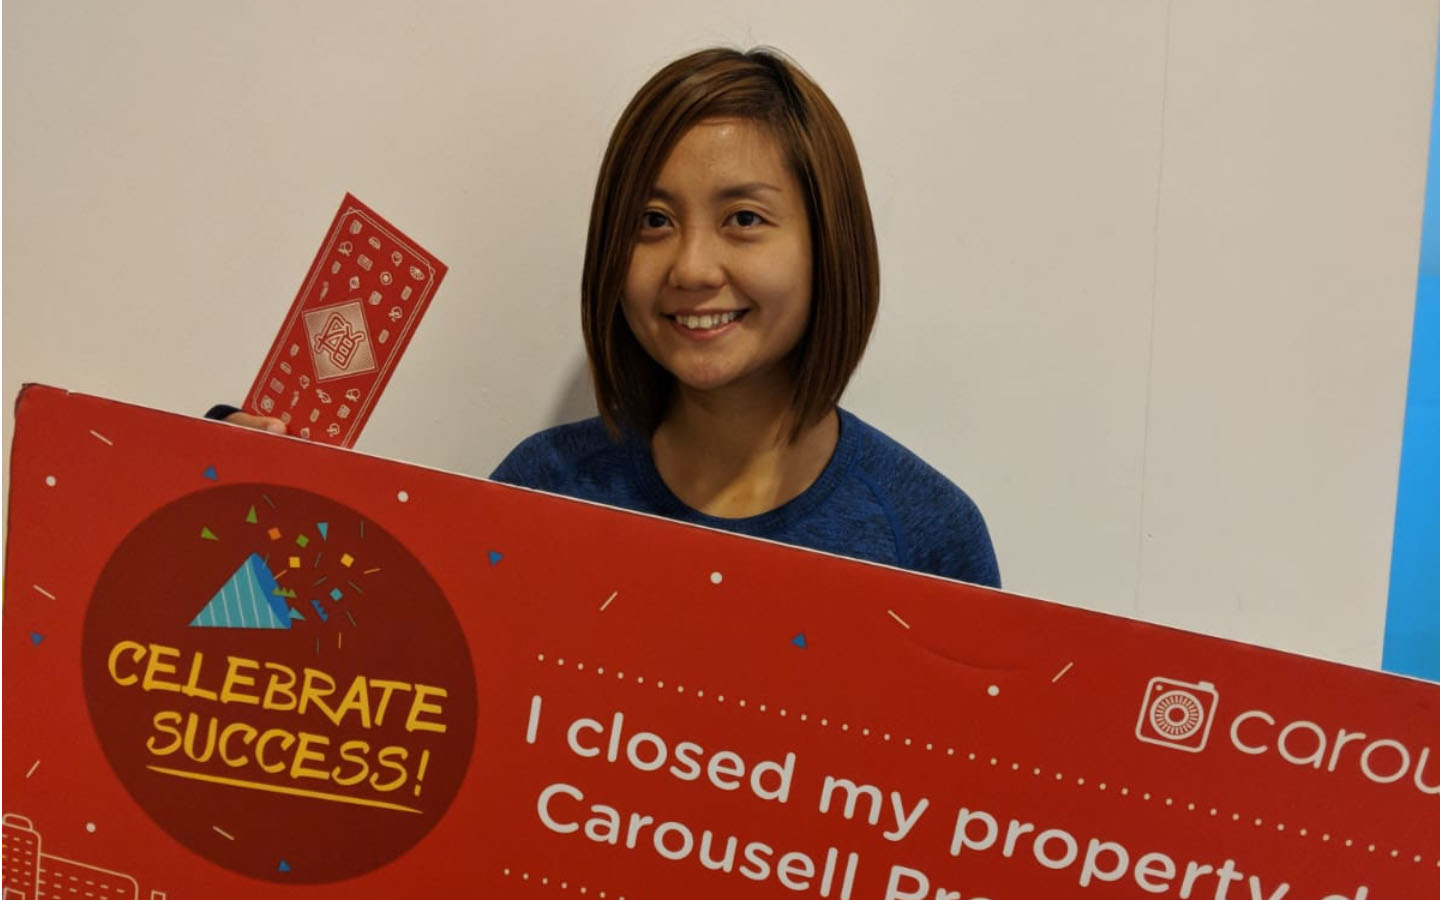 carousell for property agents bella teo